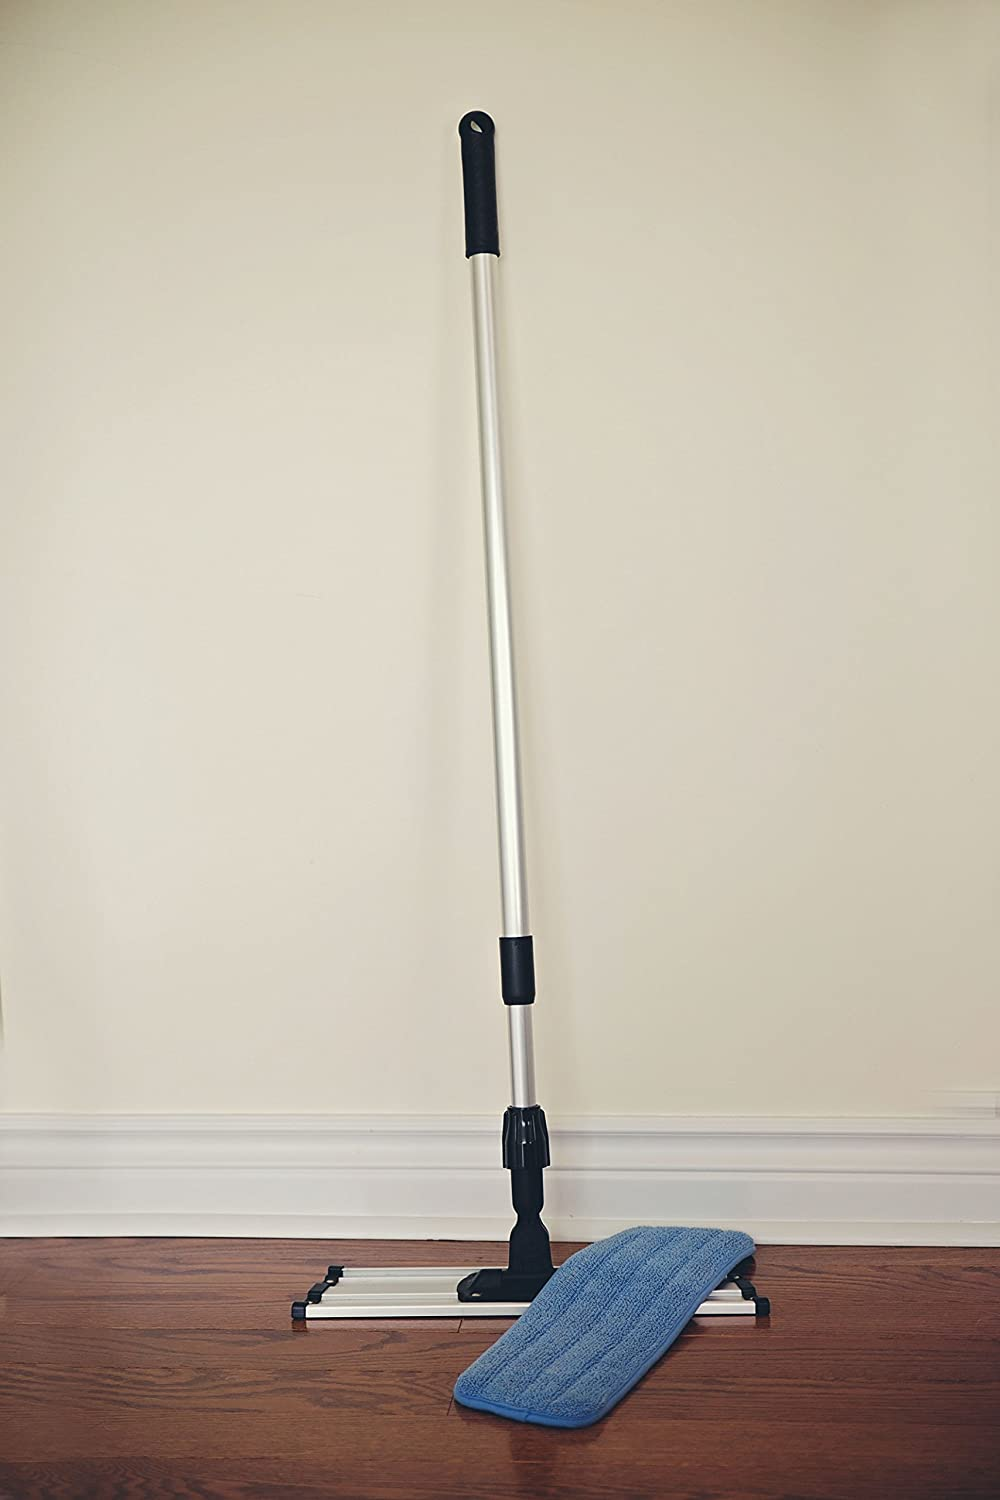 Storage amp organisation home office products housekeeping flooring baby - Amazon Com Commercial Grade Microfiber Floor Dust Mop With A Washable Pad Works Well On All Surfaces Telescoping Handle Adjusts To Your Height